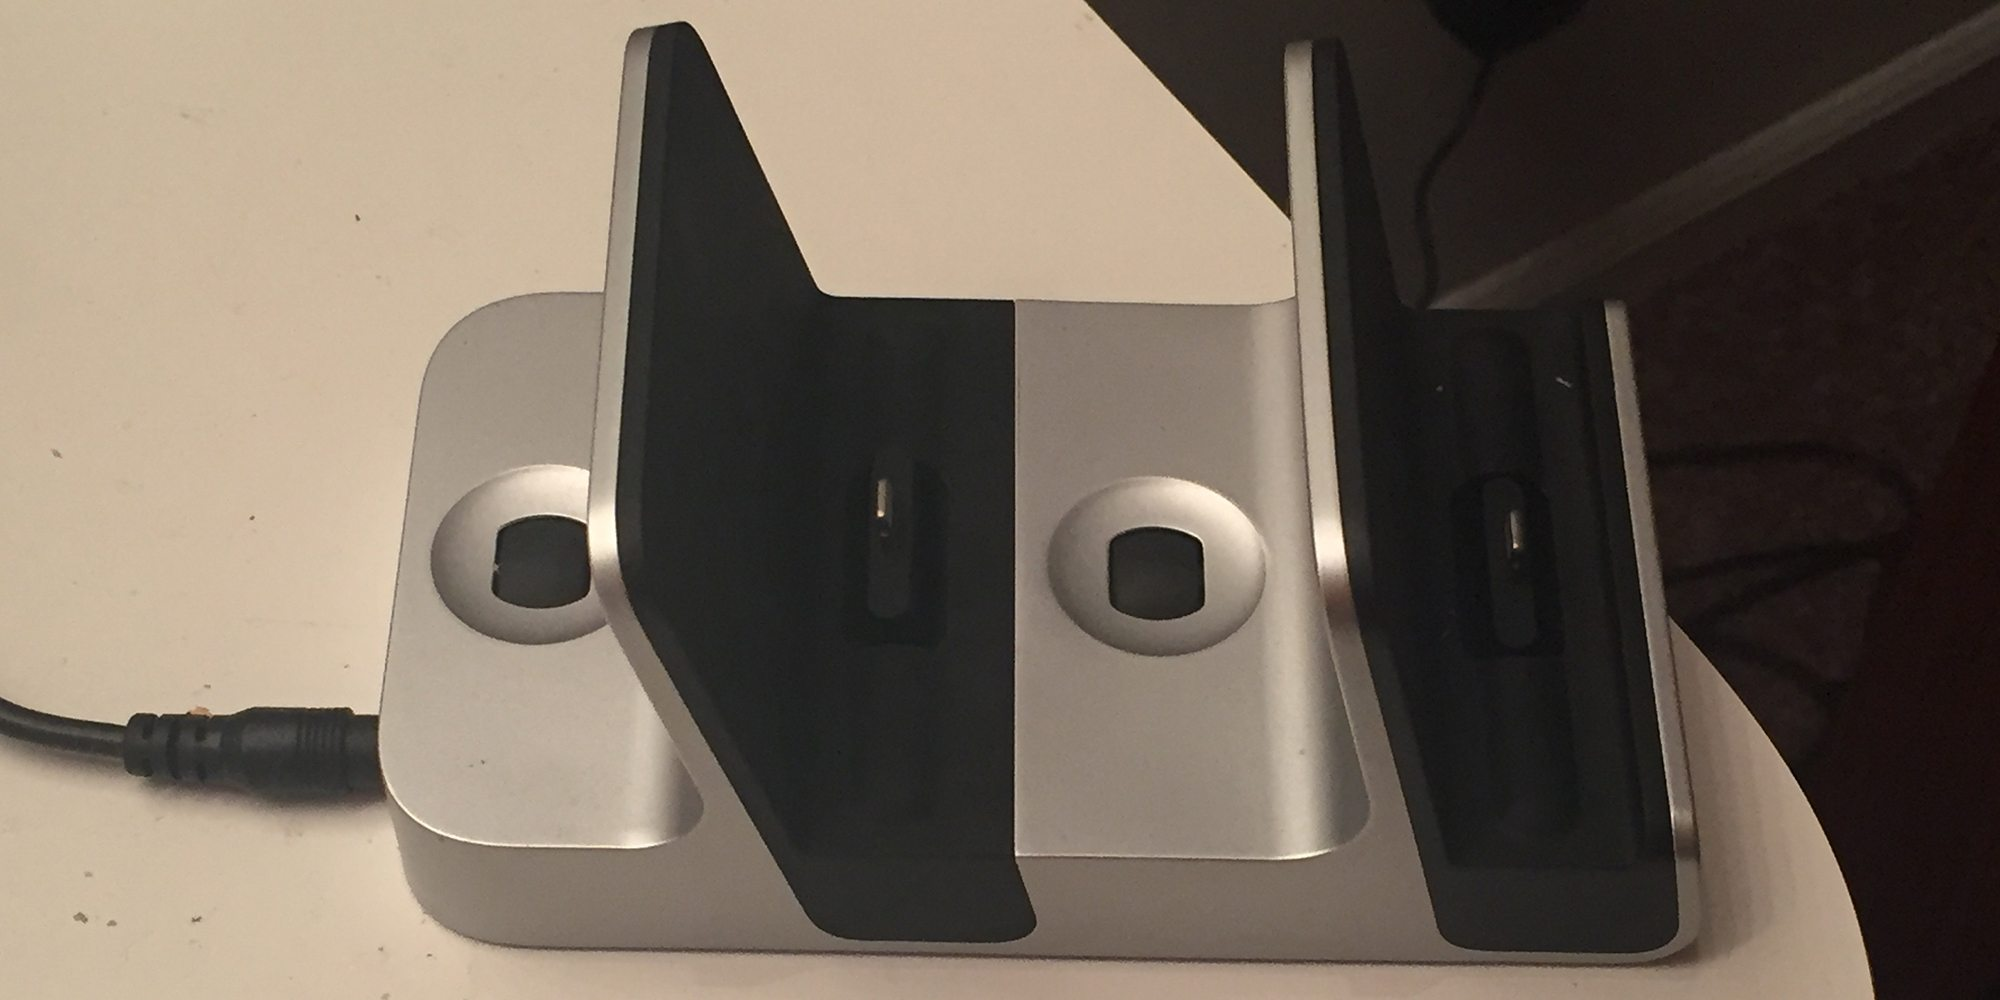 Review: Life With the Belkin PowerHouse Charging Dock Duo